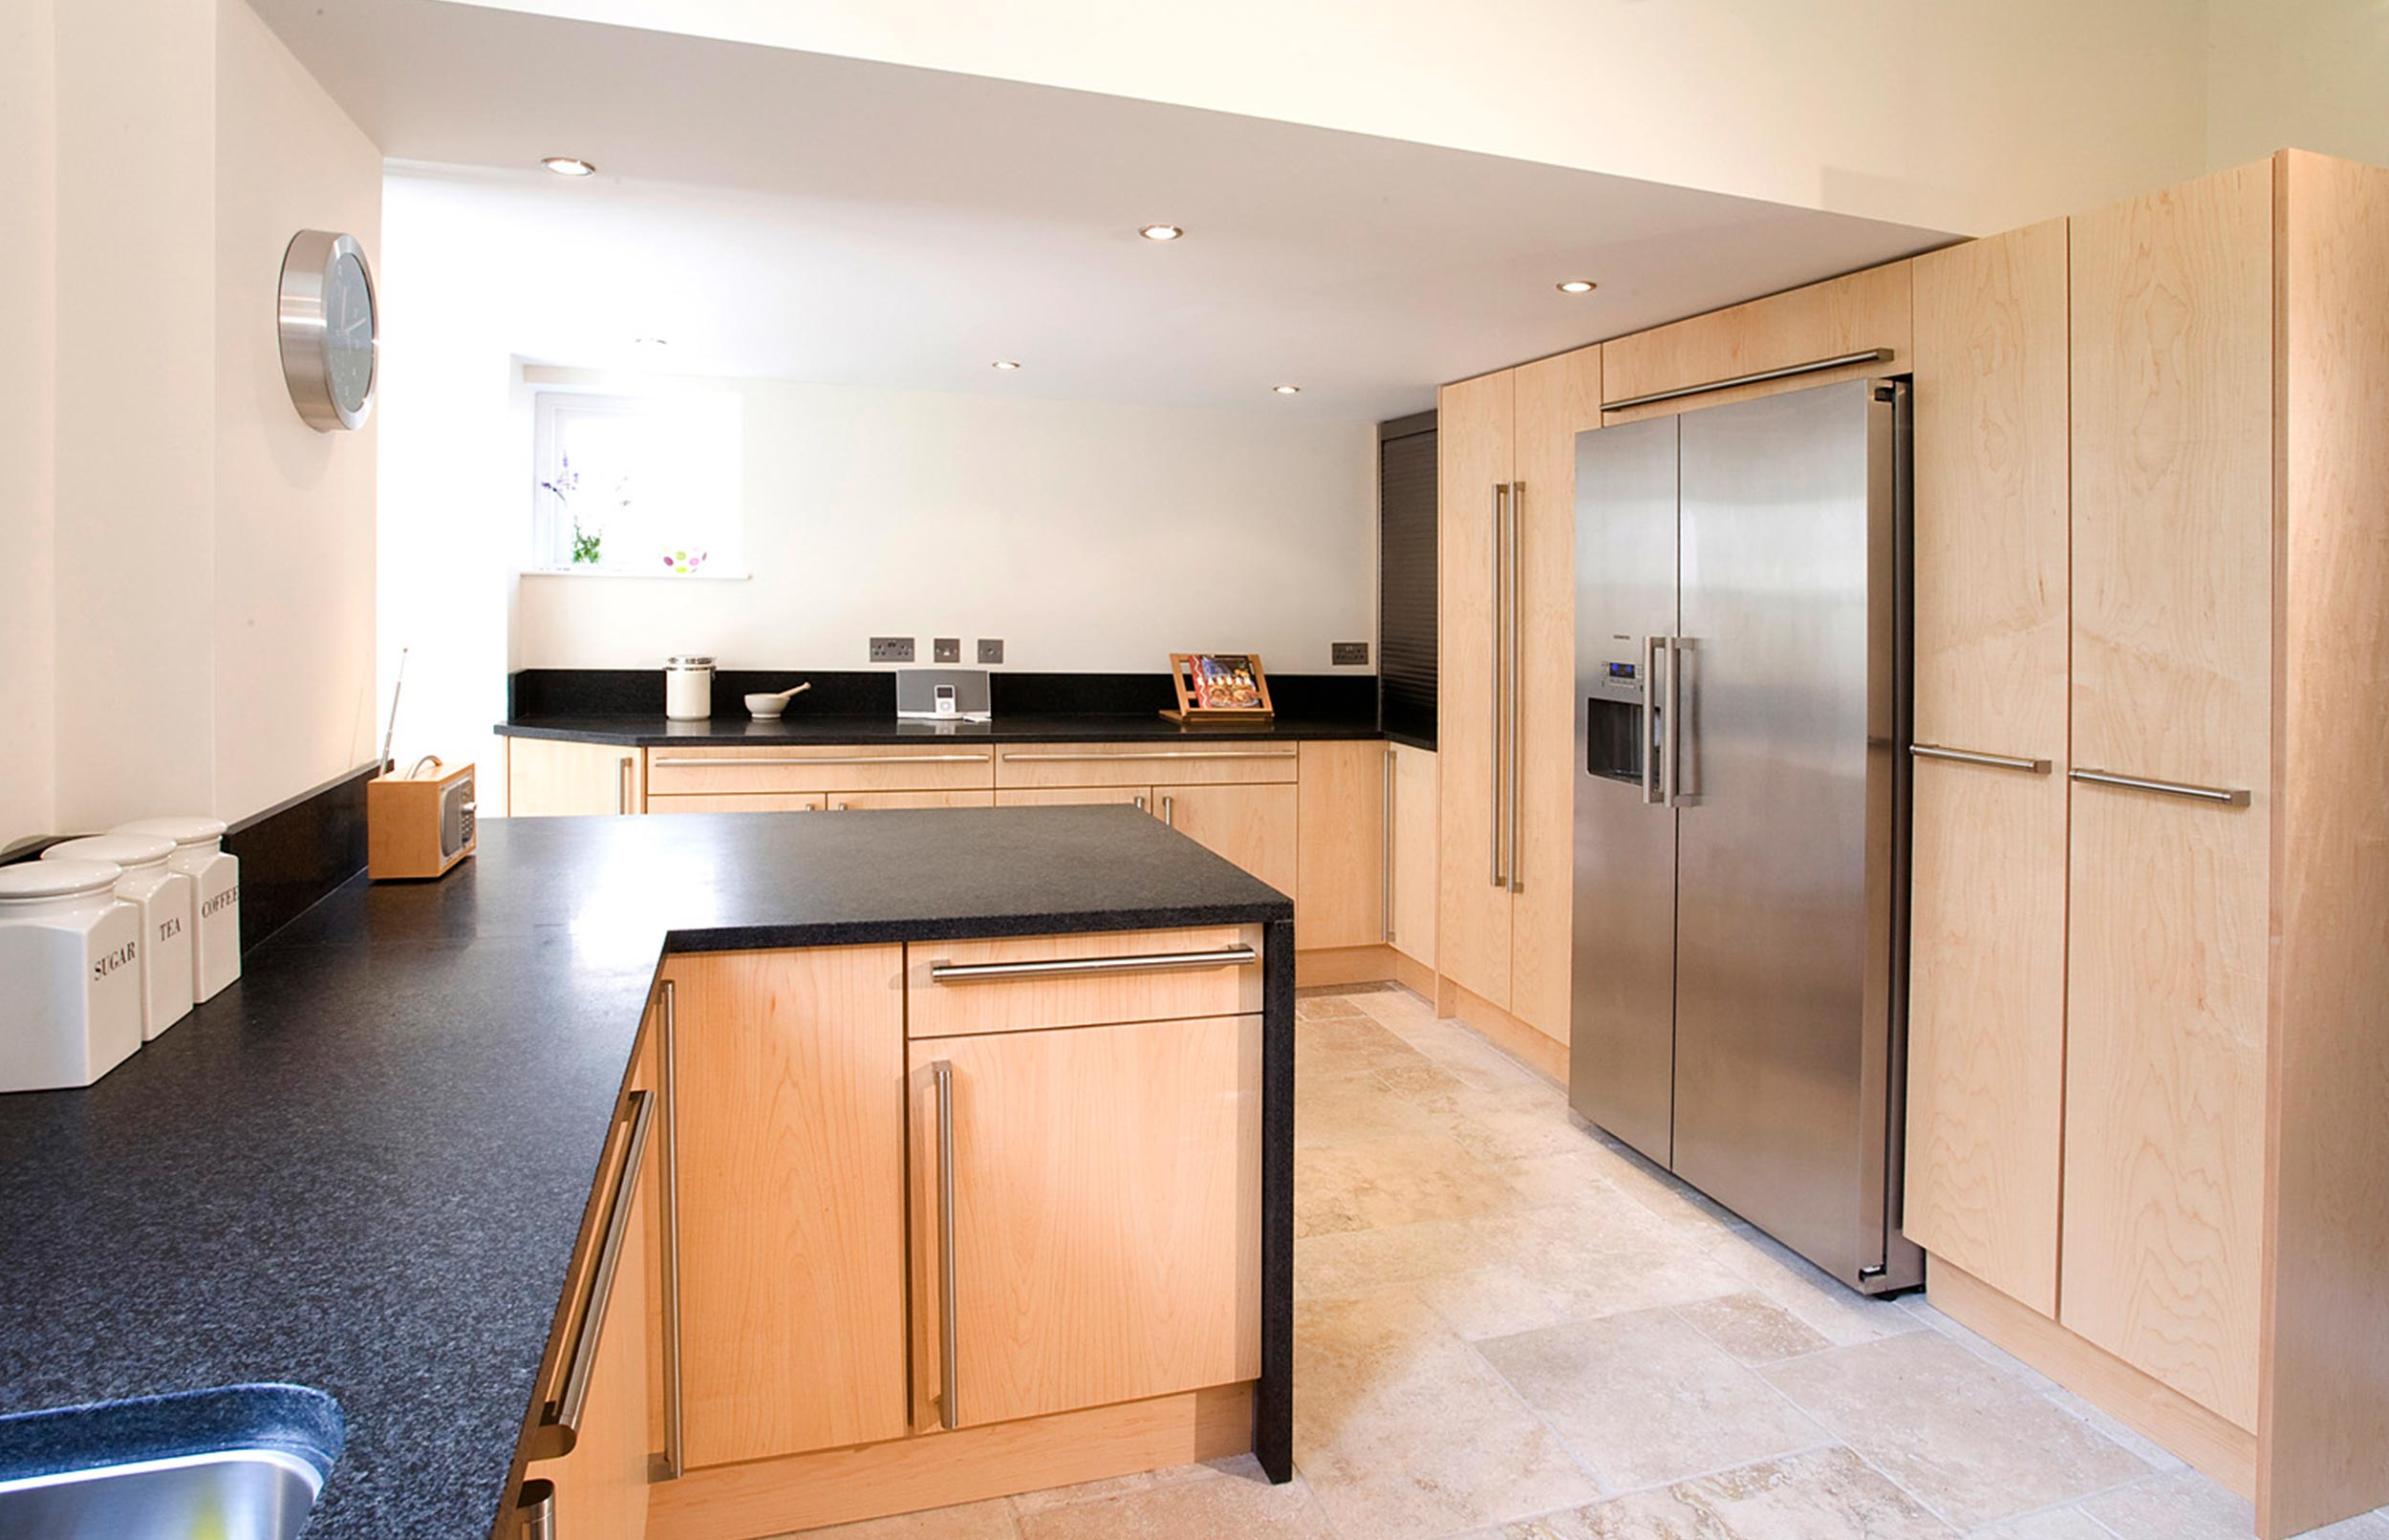 Contemporary City Bespoke Kitchen view with American Refridgerator